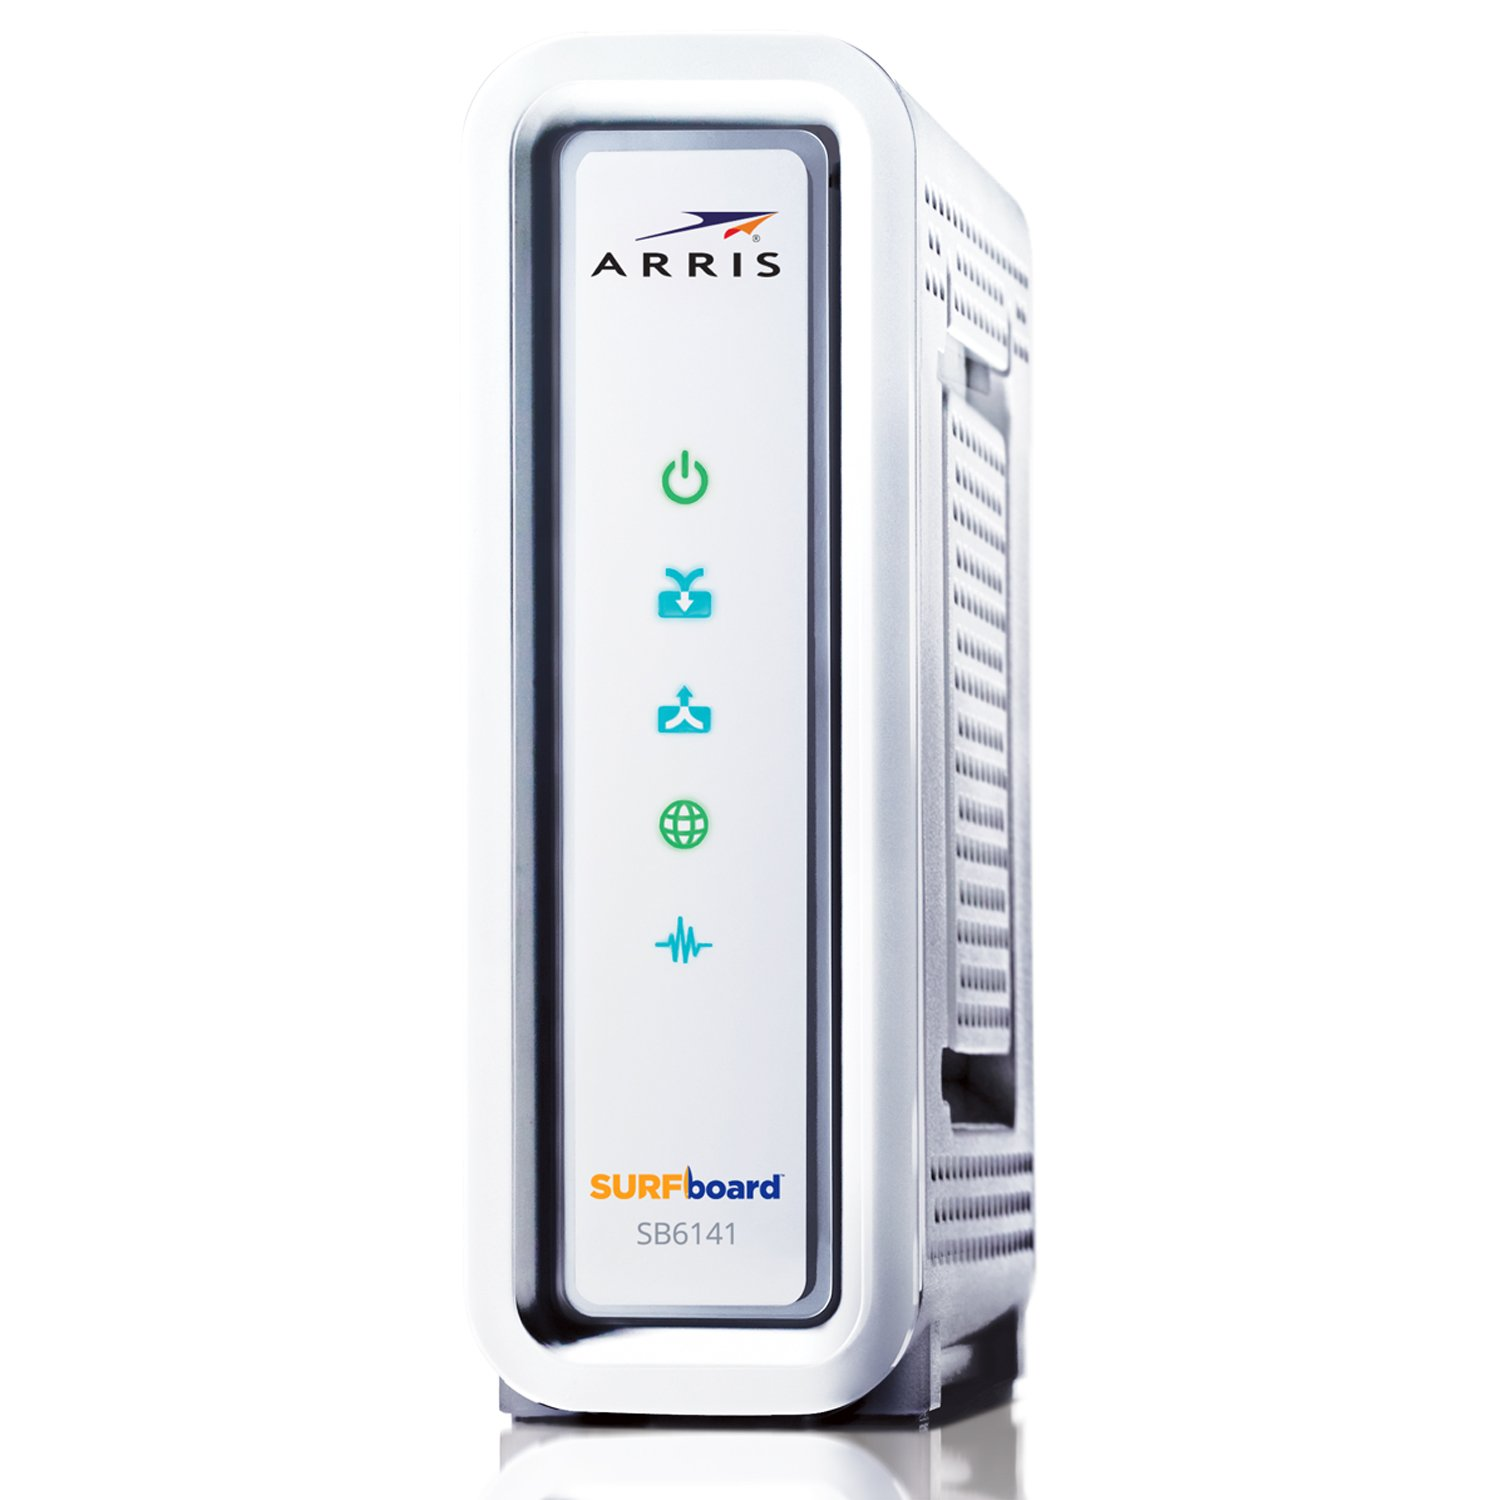 ARRIS SURFboard SB6141-RB 8x4 DOCSIS 3.0 Cable Modem (Certified Refurbished)